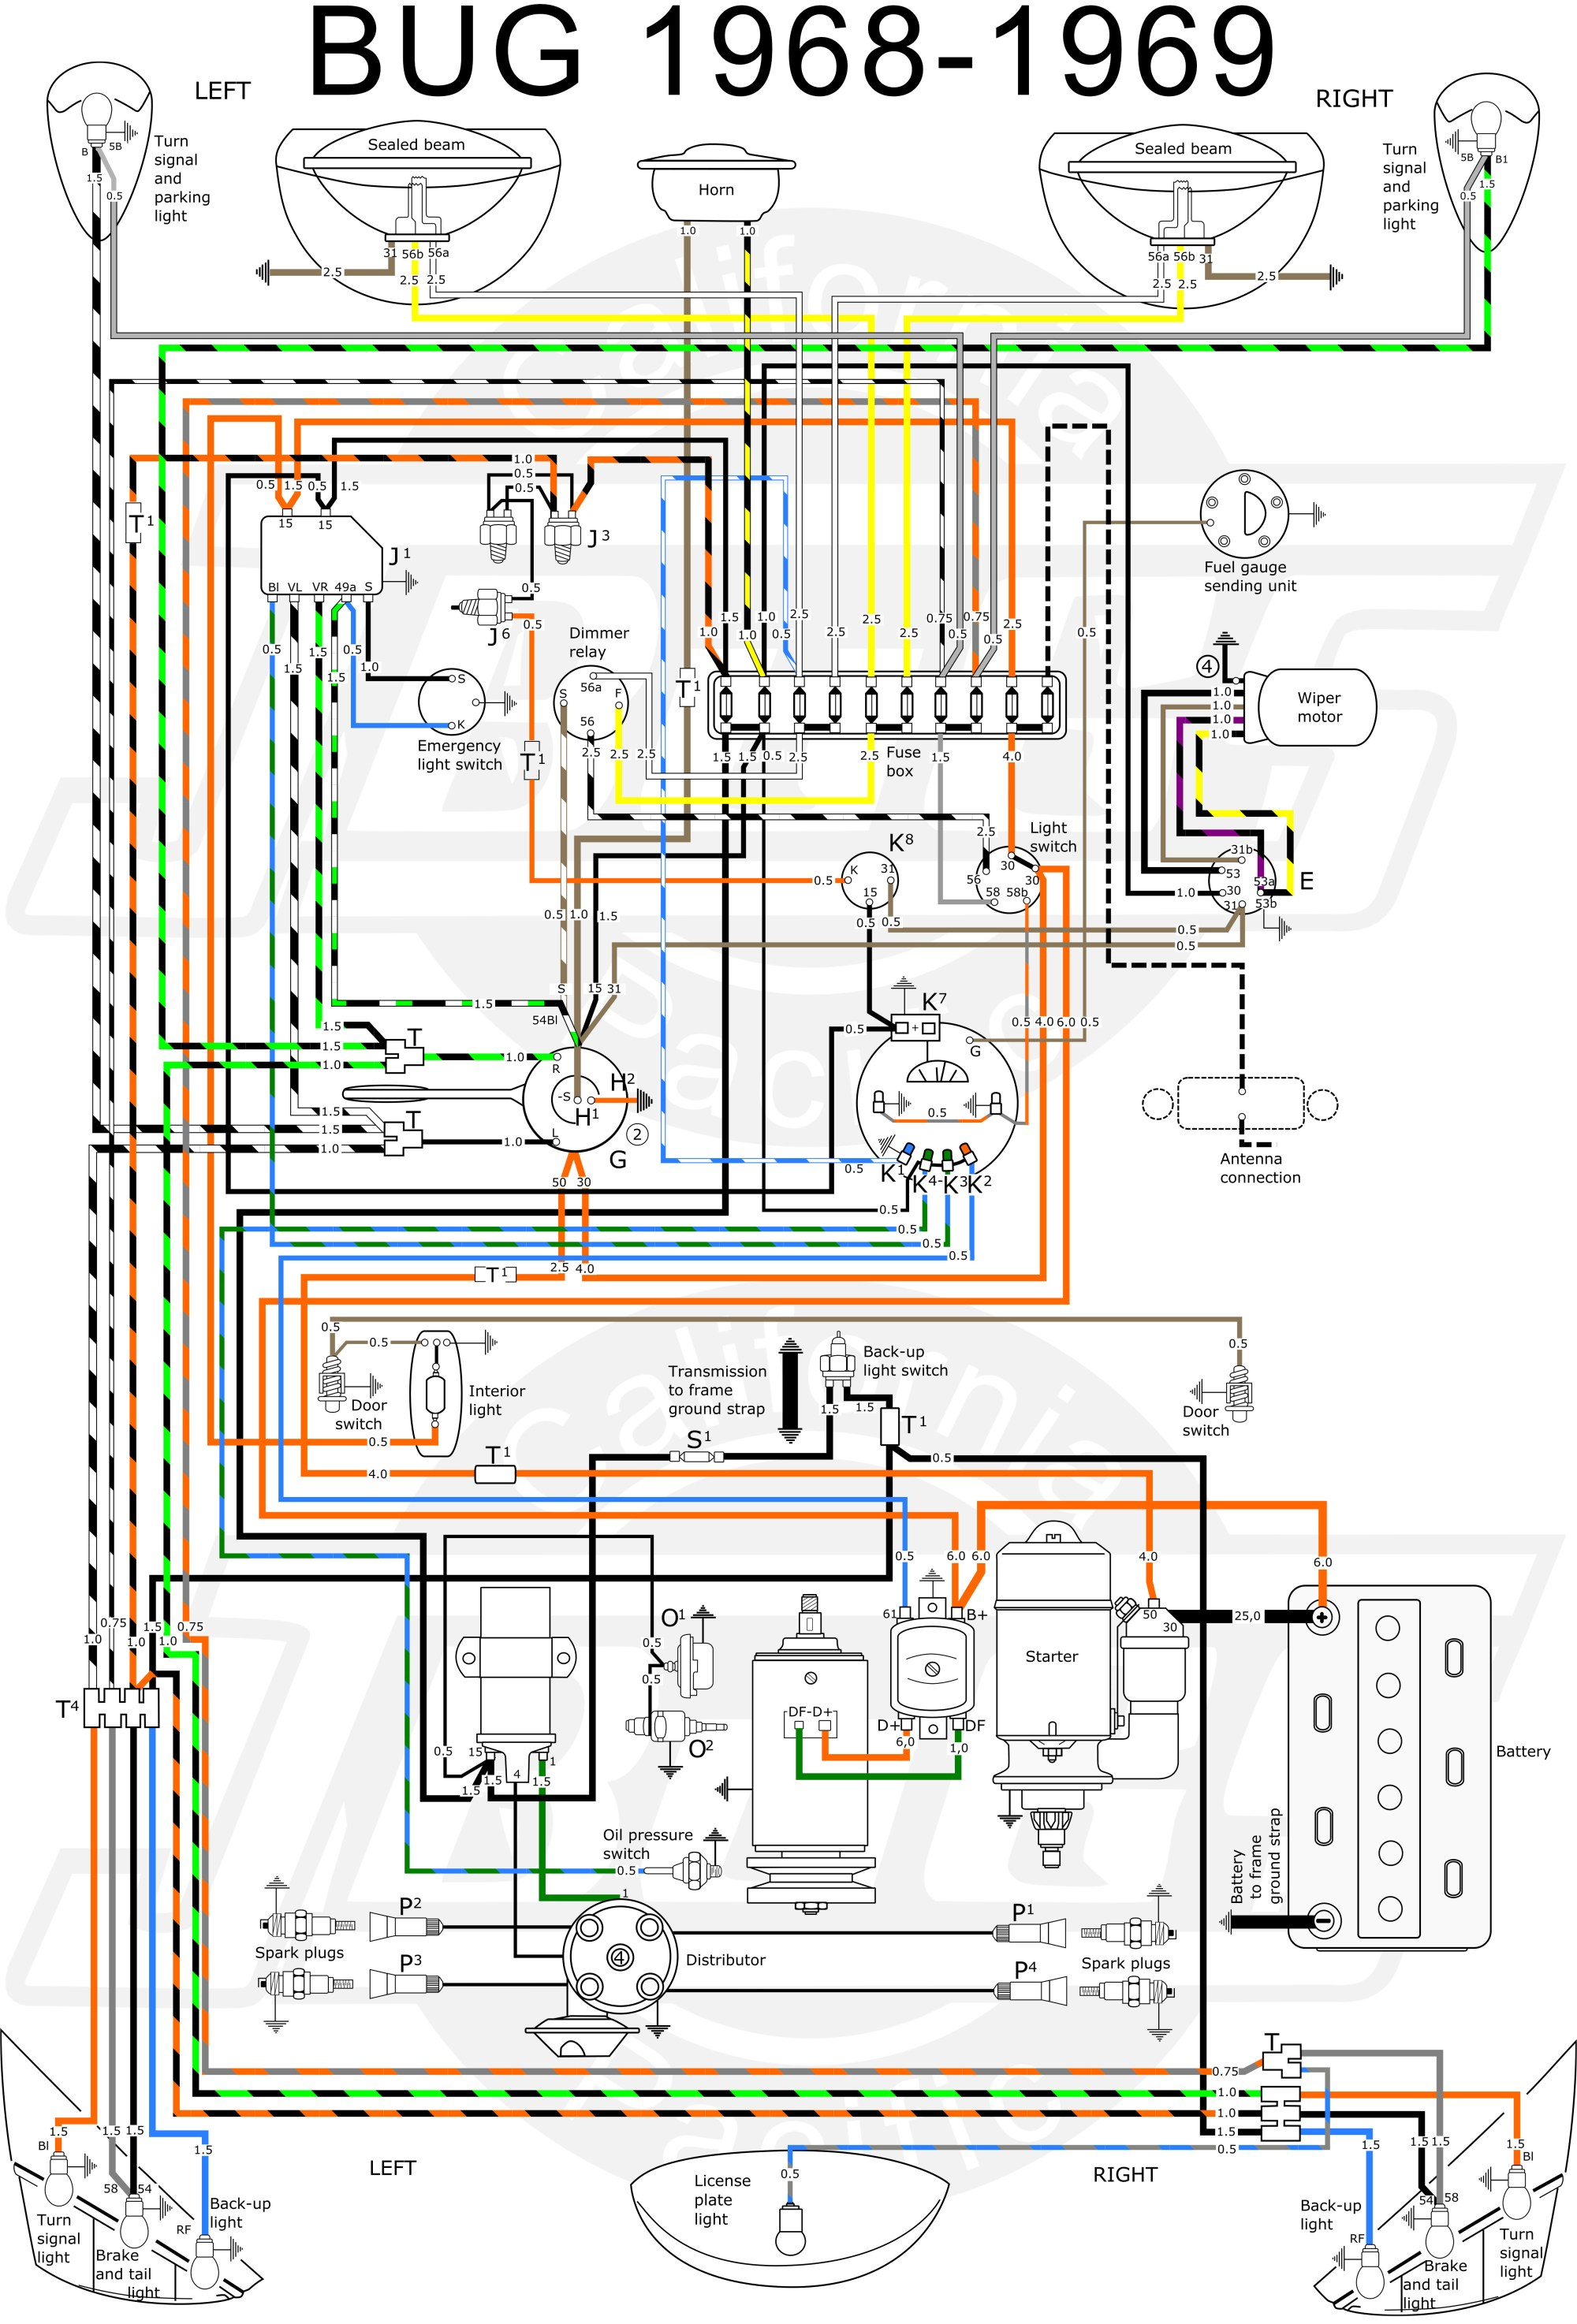 hight resolution of 69 vw beetle wiring diagram schematics diagram rh volmervillage com 1969 vw beetle fuse box location